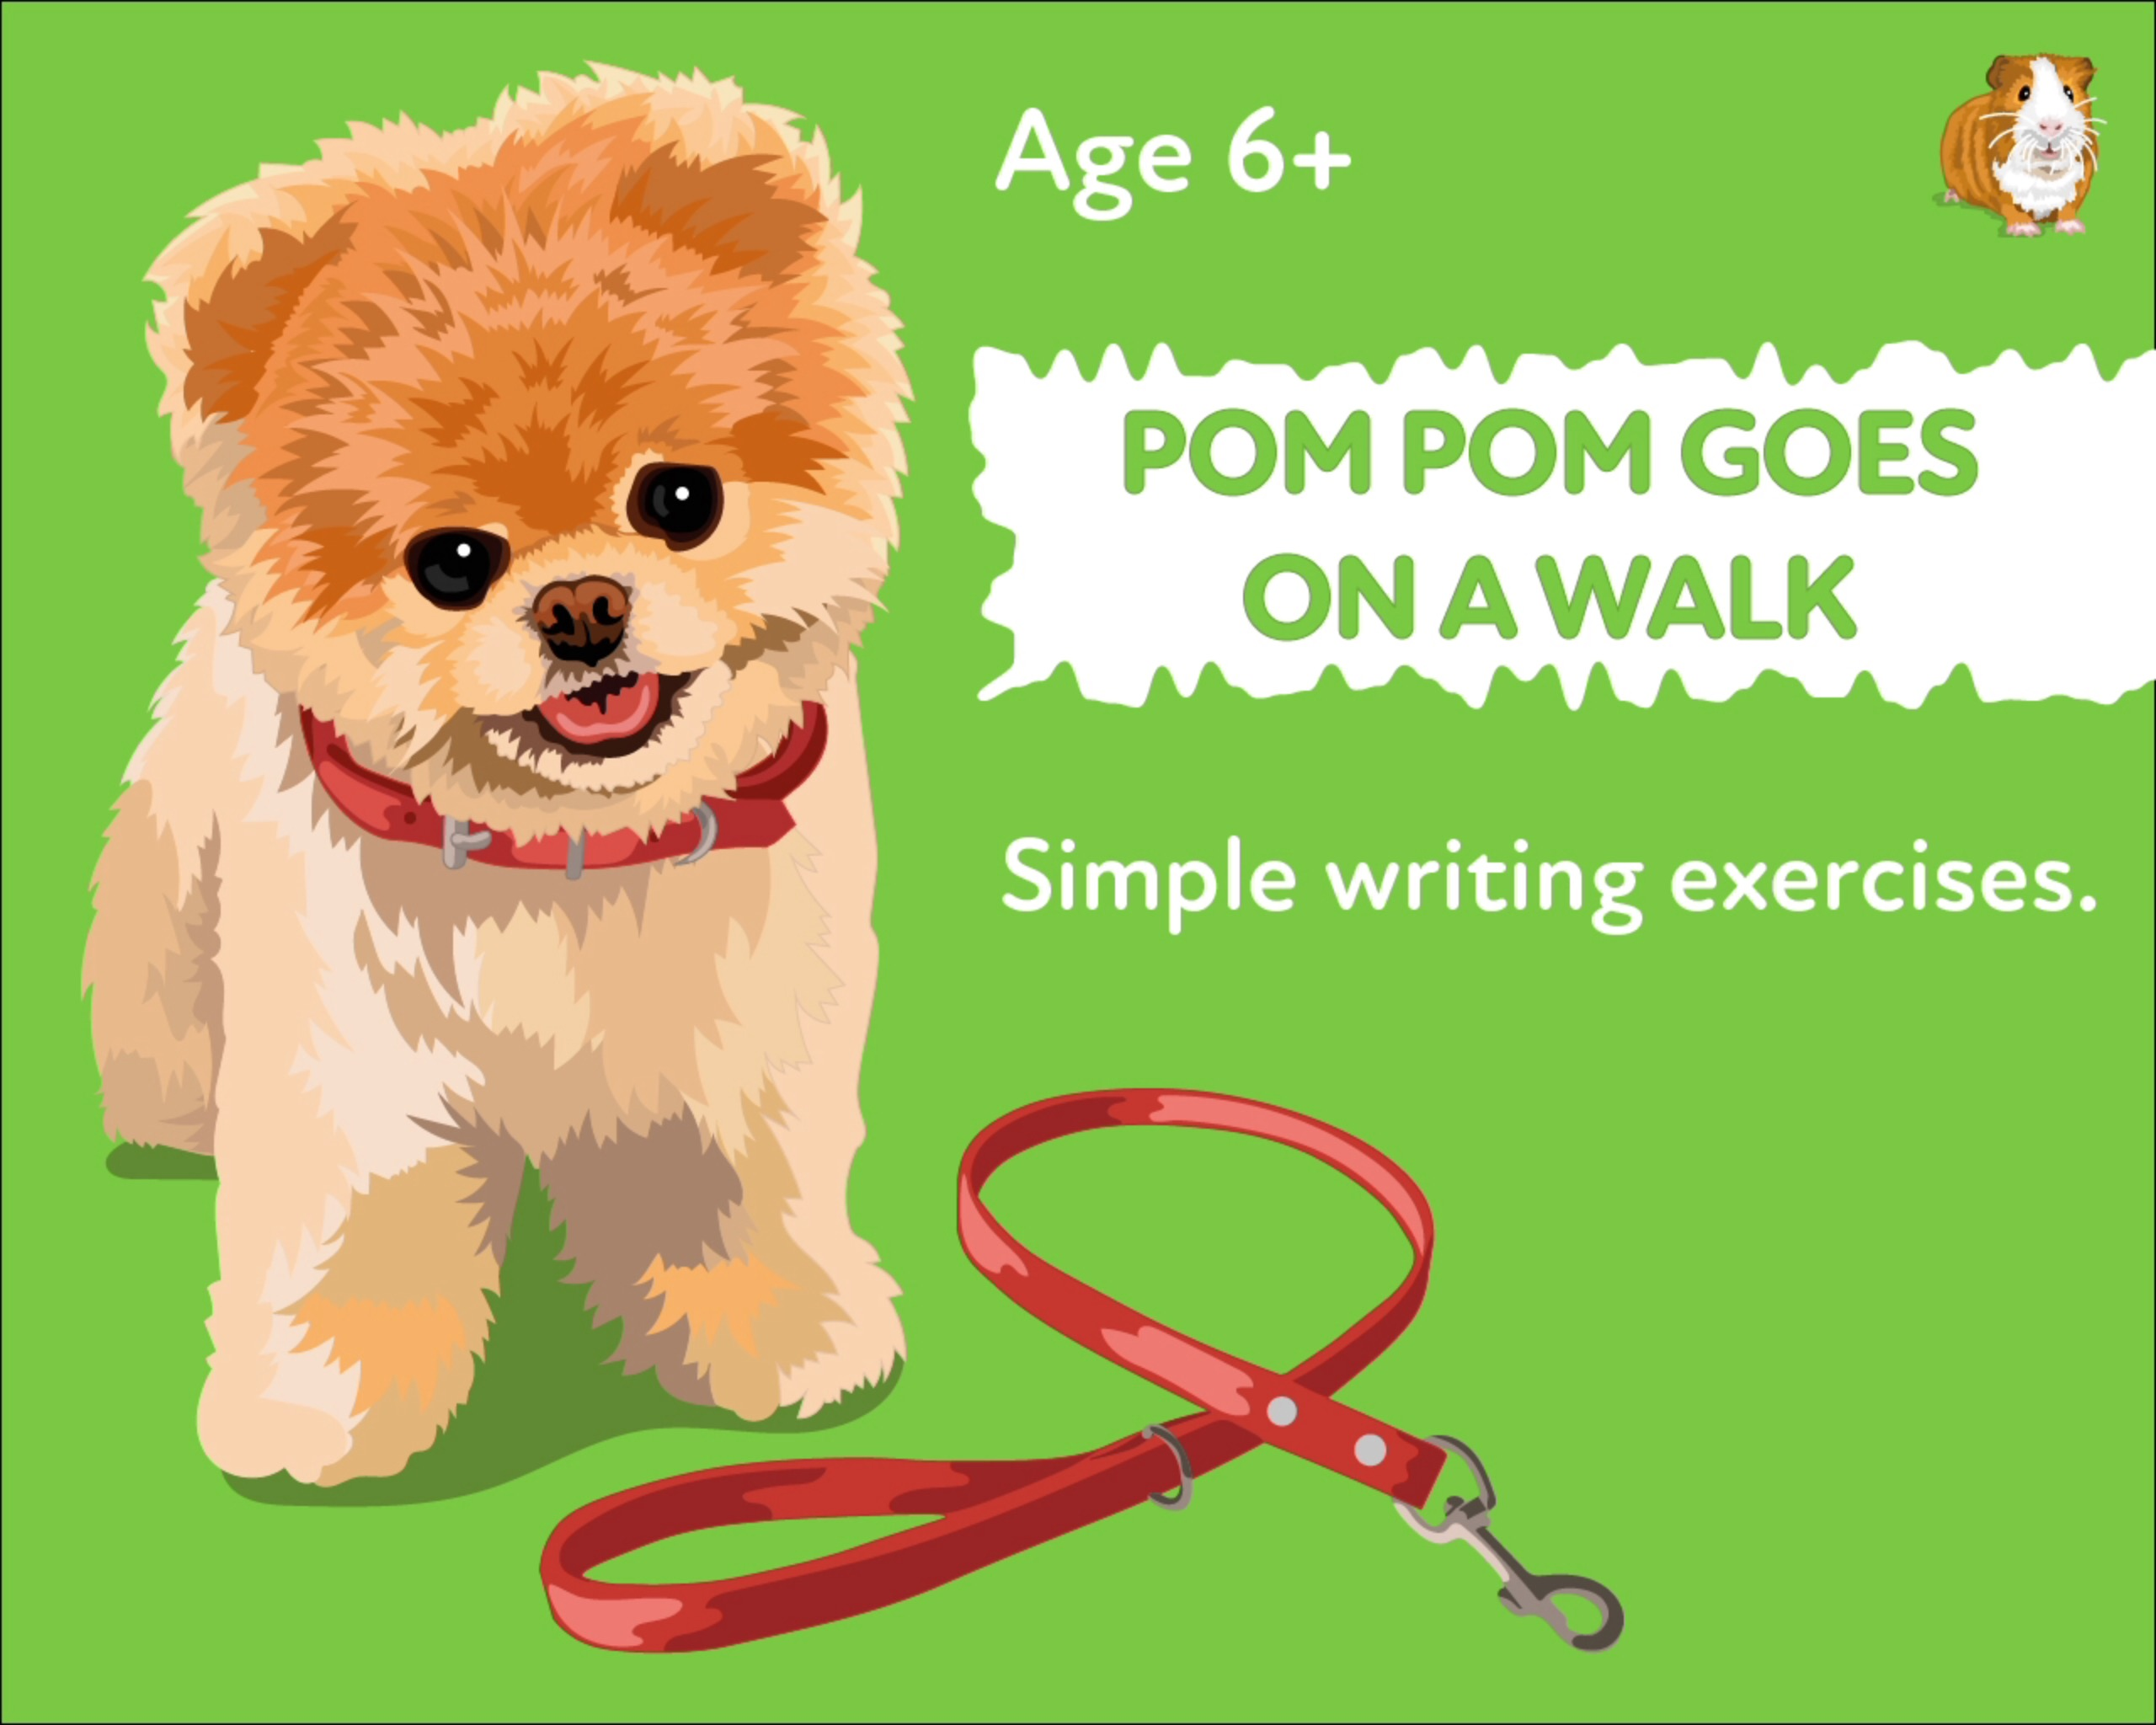 'Pom Pom Goes On A Walk' A Fun Writing And Drawing Activity (6 years +)